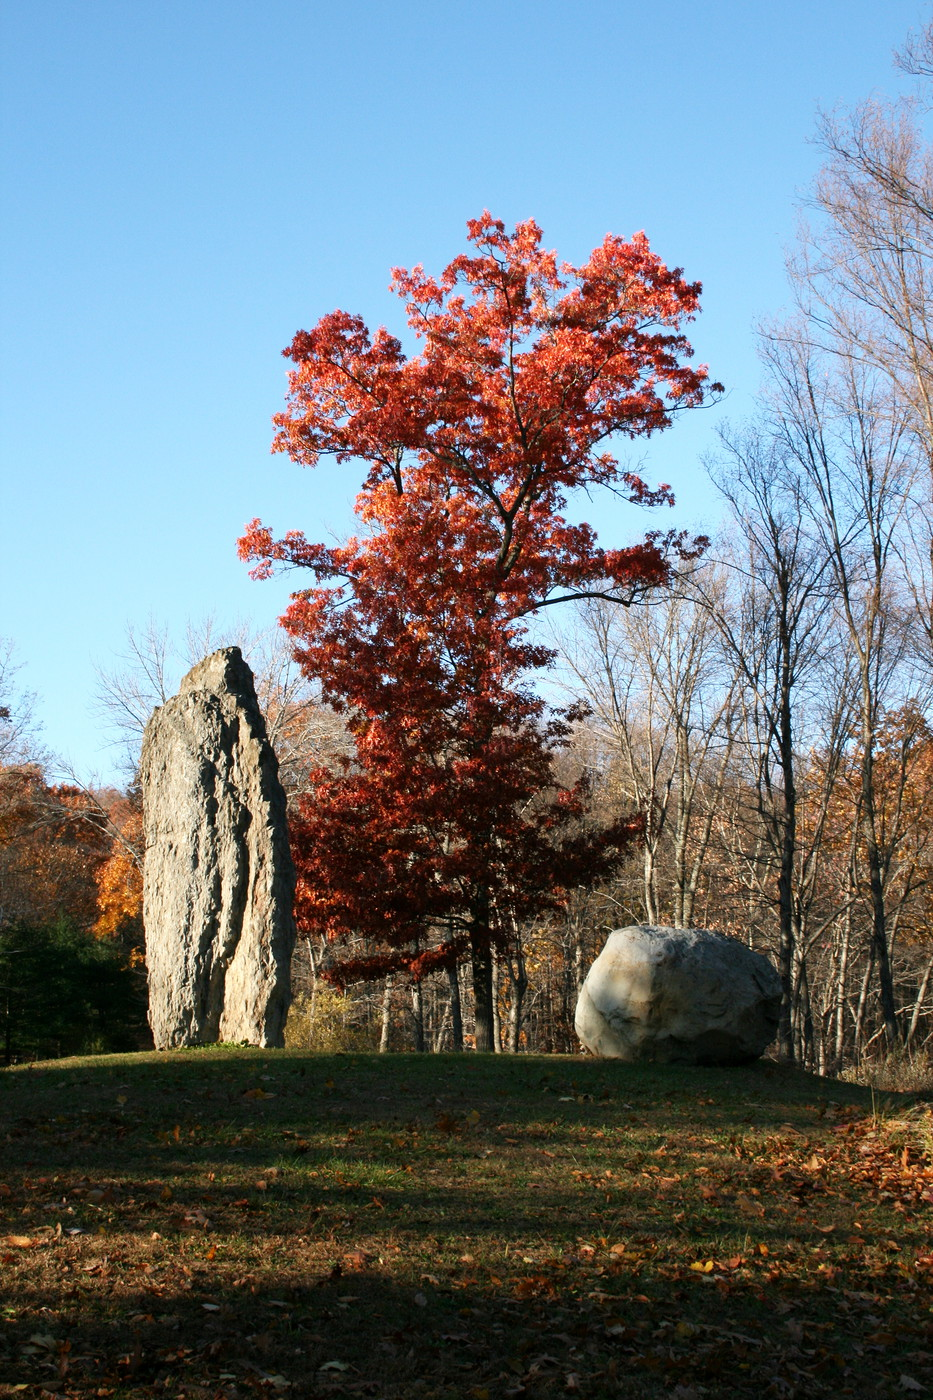 Large rock and colorful tree